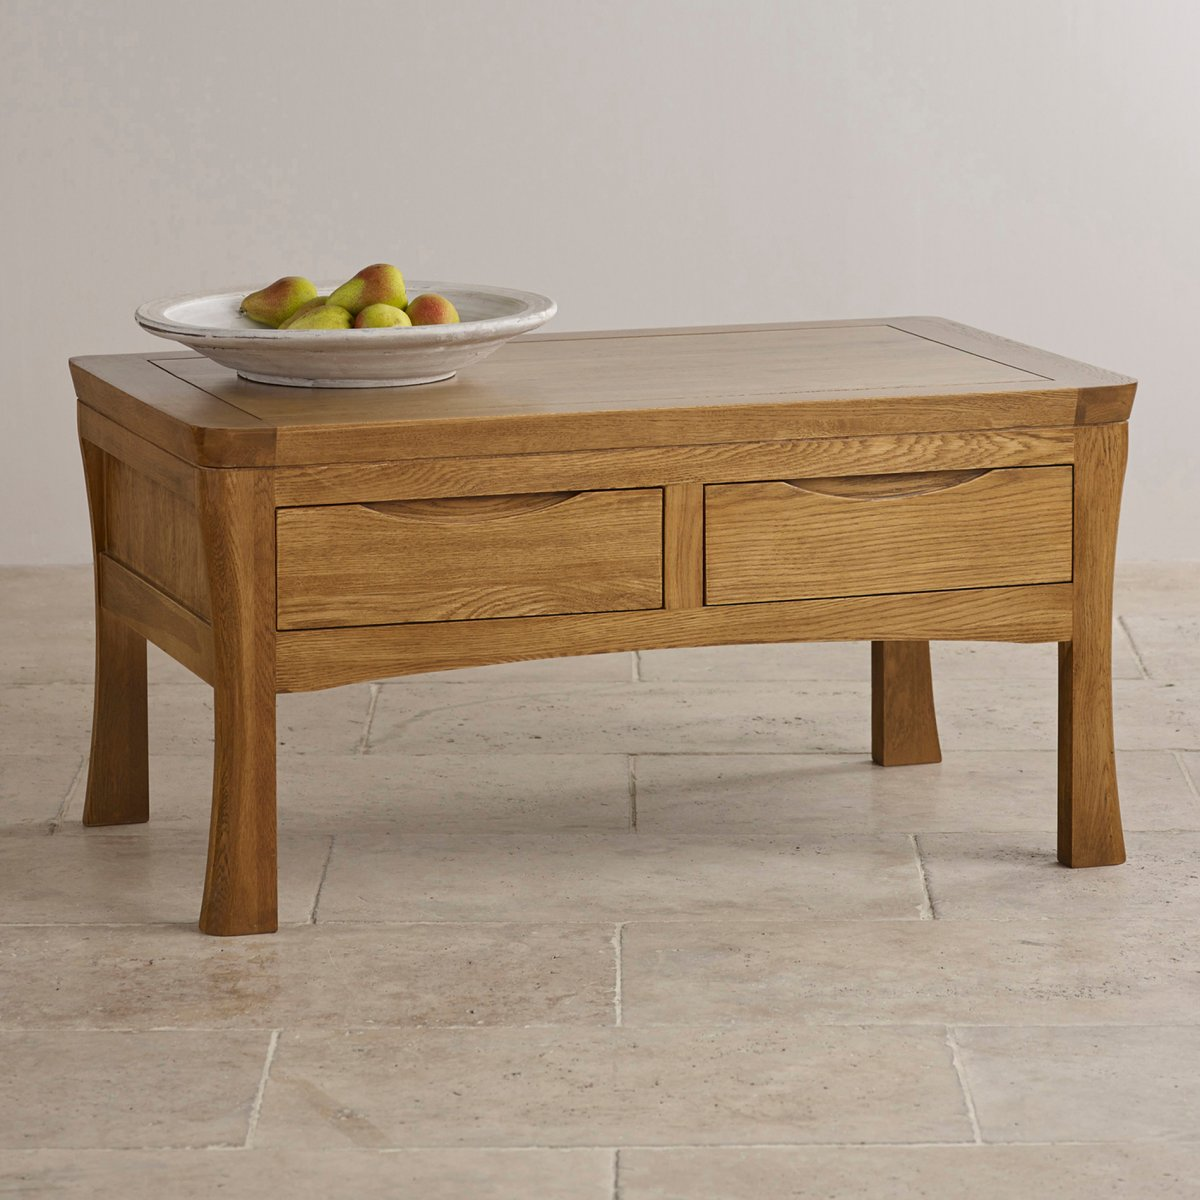 Coffee Table With Drawers Sale: Orrick 4 Drawer Coffee Table In Rustic Oak